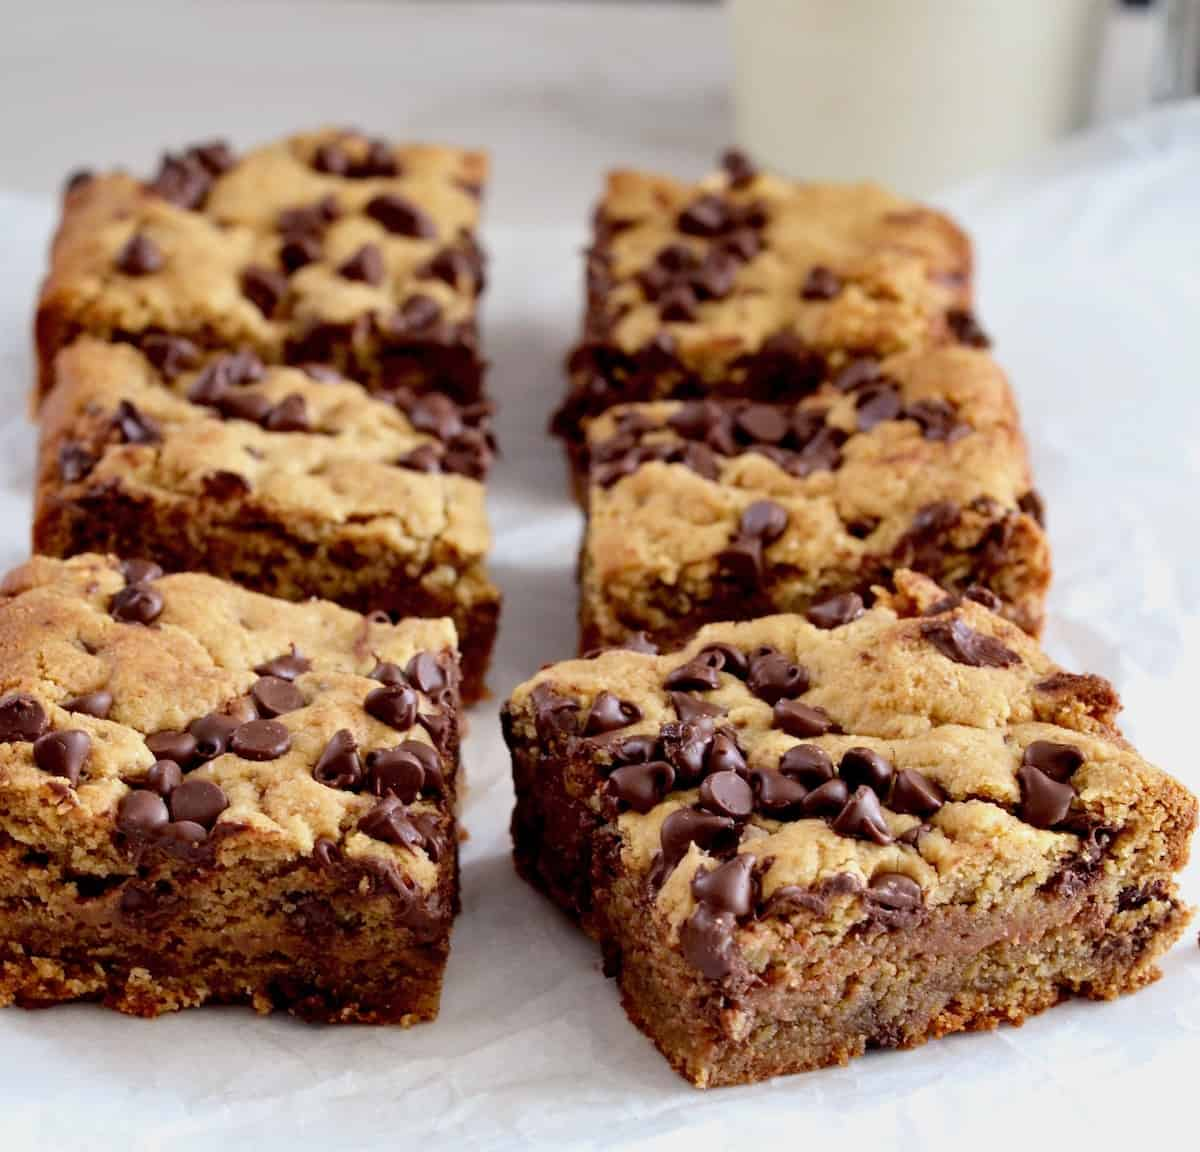 6 bars with chocolate chips in rows of three.